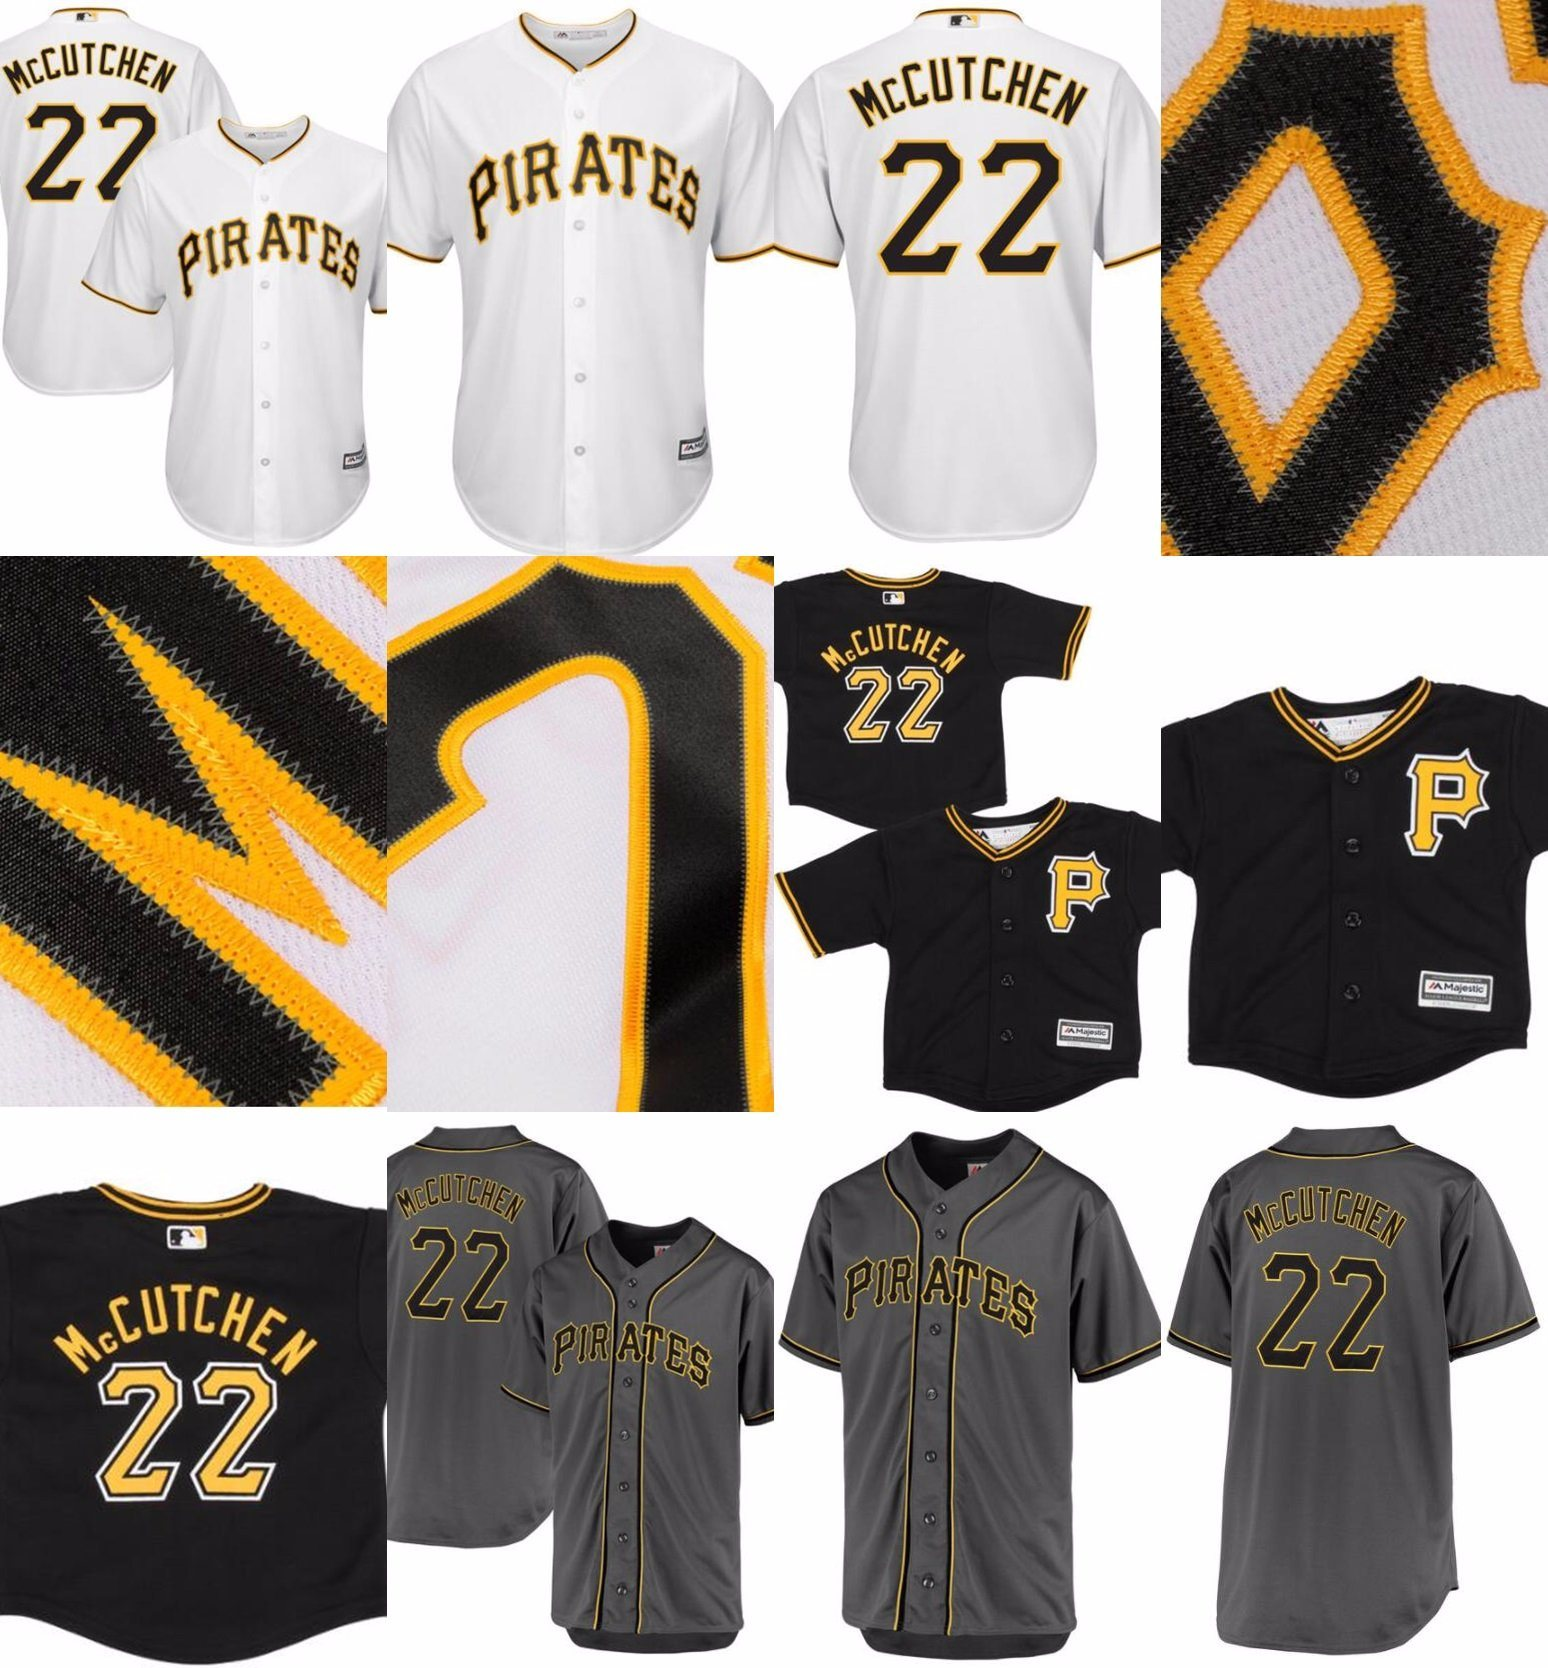 new concept c1f83 4db5e [Hot Item] Pittsburgh Pirates 22 Andrew Mccutchen Cool Base Baseball Jerseys